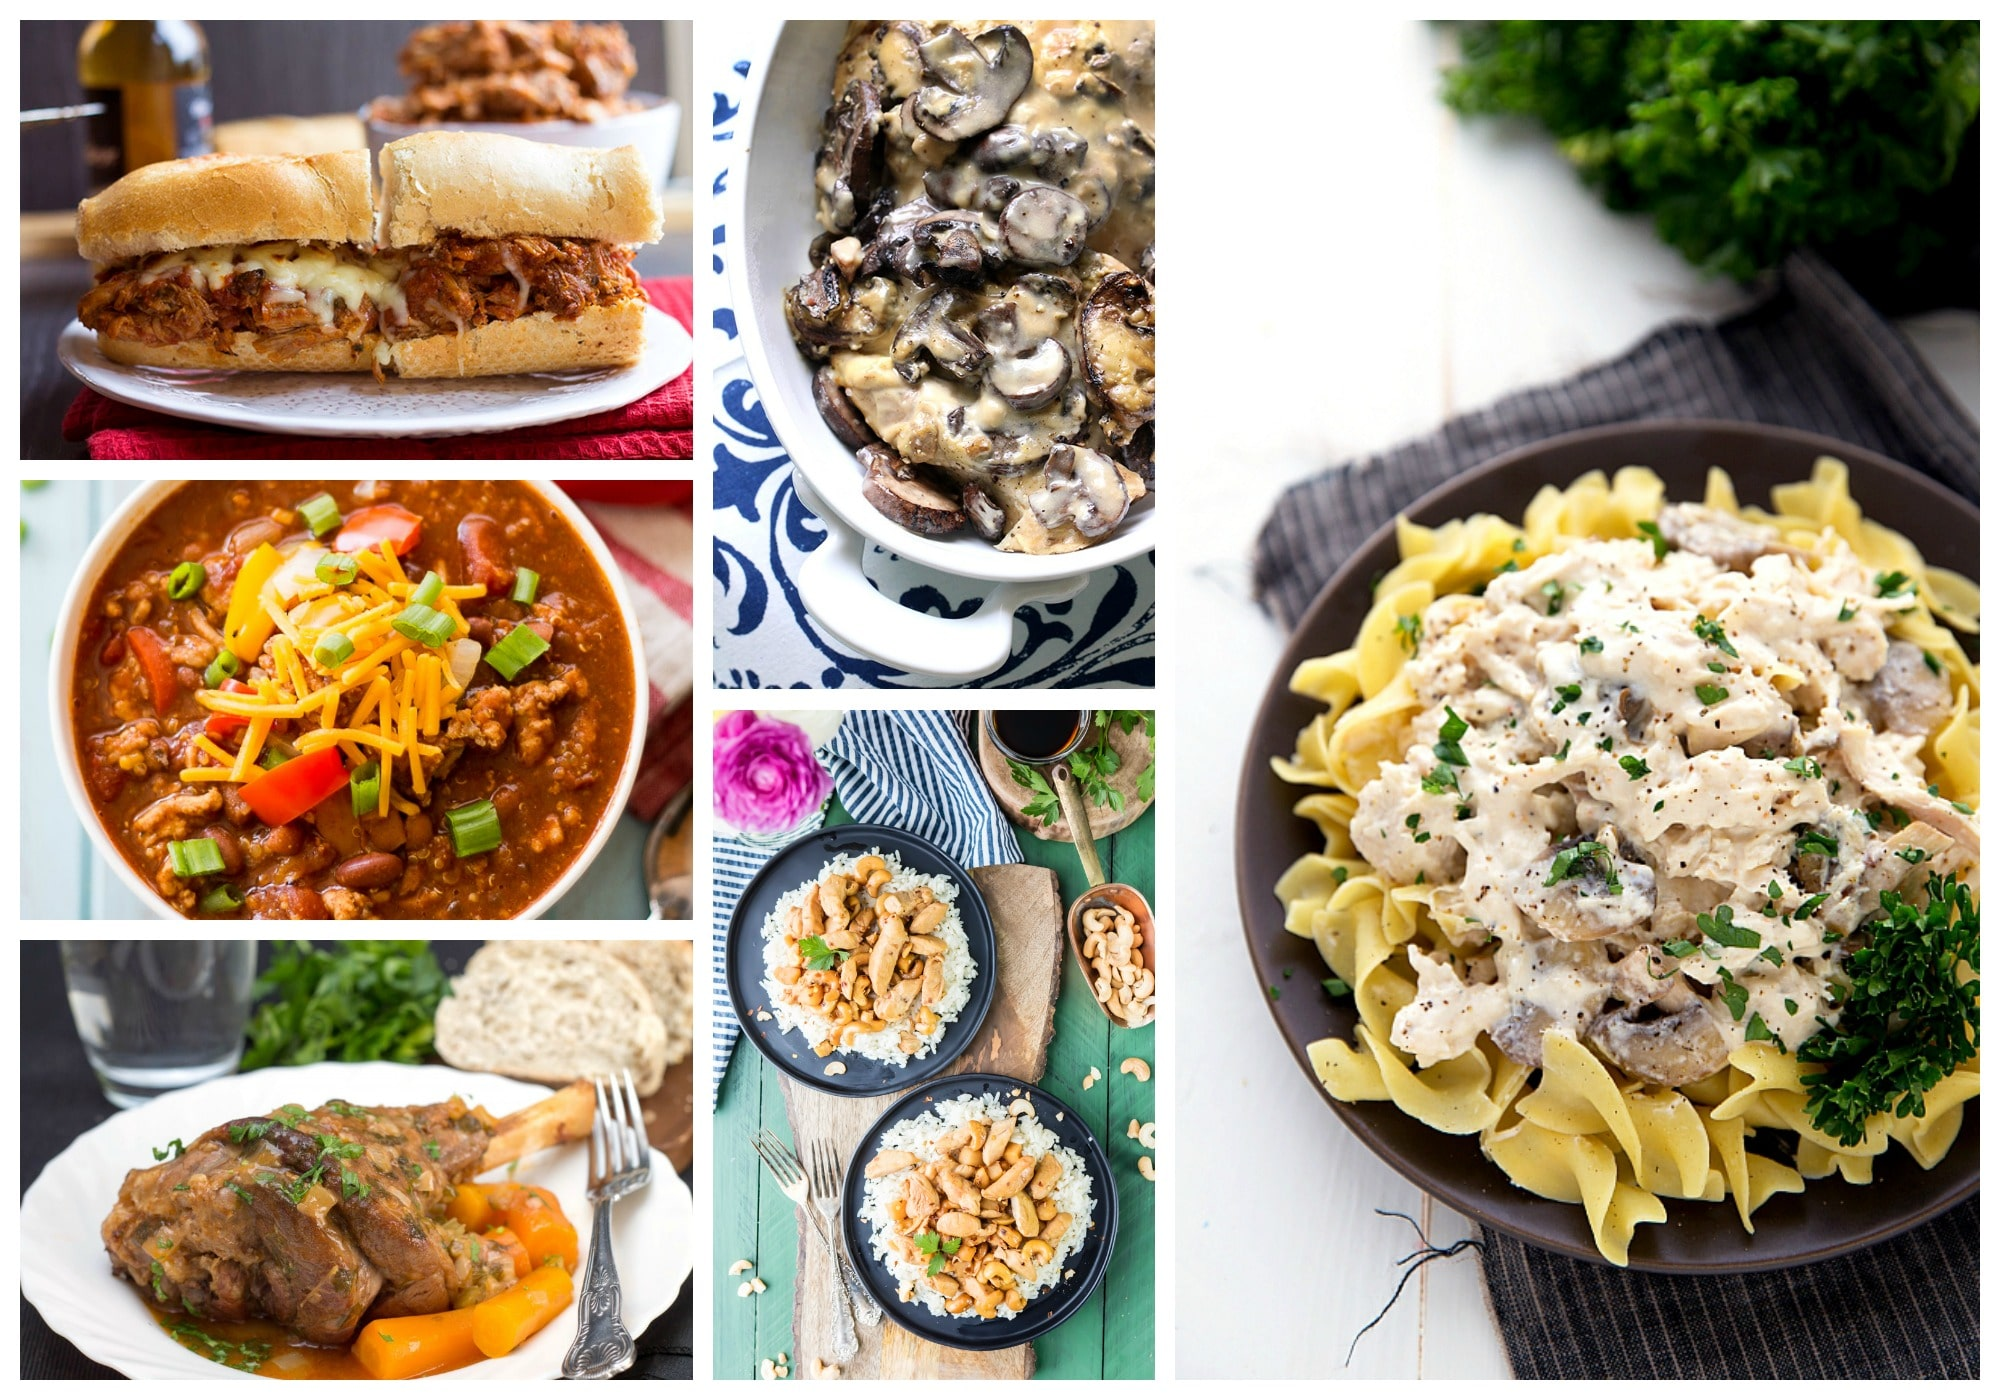 25 Amazing Slow Cooker Recipes - slow cooker recipes are always a great option for anyone who wants to have a home cooked meal ready for them after a busy day. These 25 recipes from around the web will give you some wonderful ideas to make the most of your slow cooker.